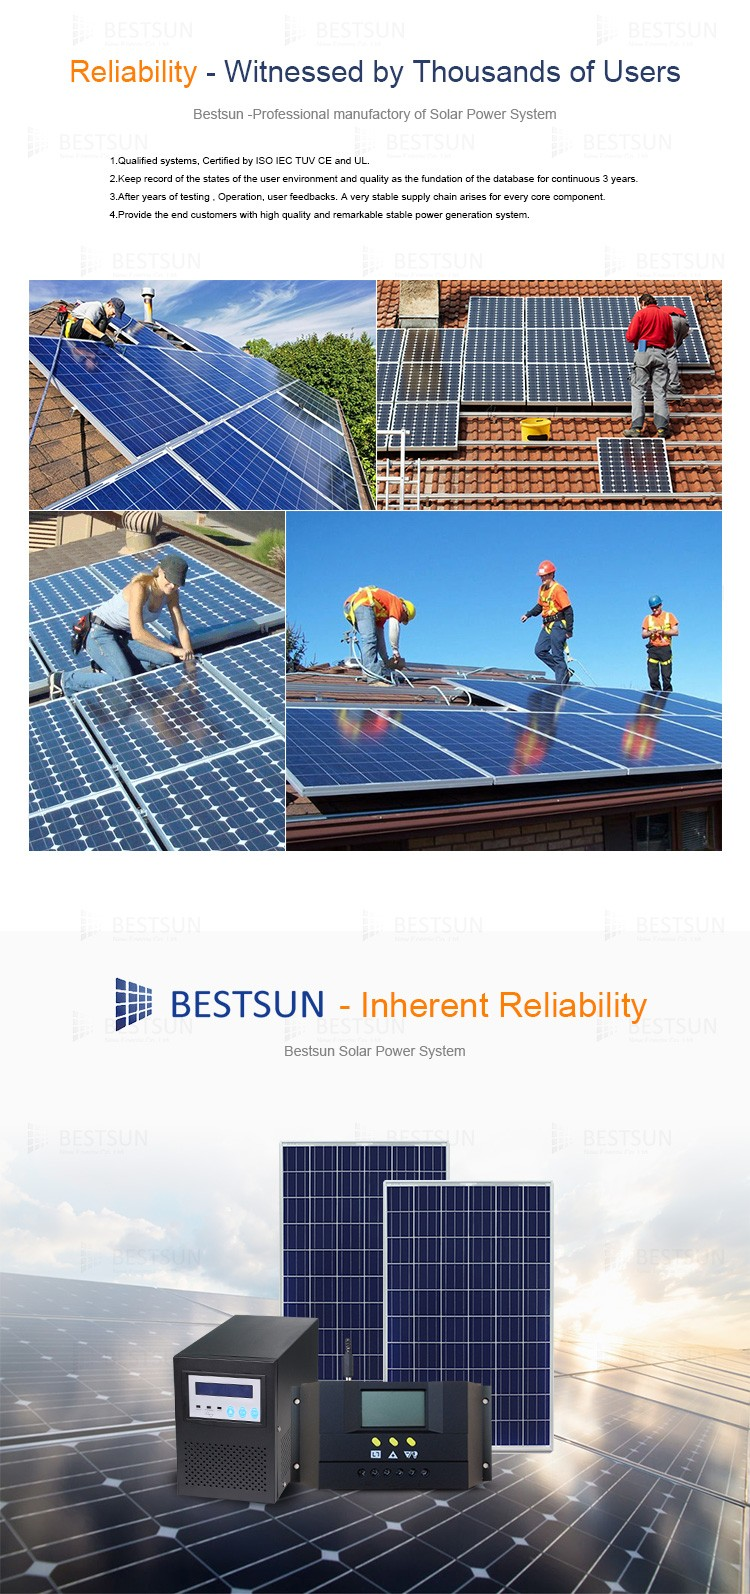 Low Price 1 Kw Stand Alone Solar System For Home Lighting